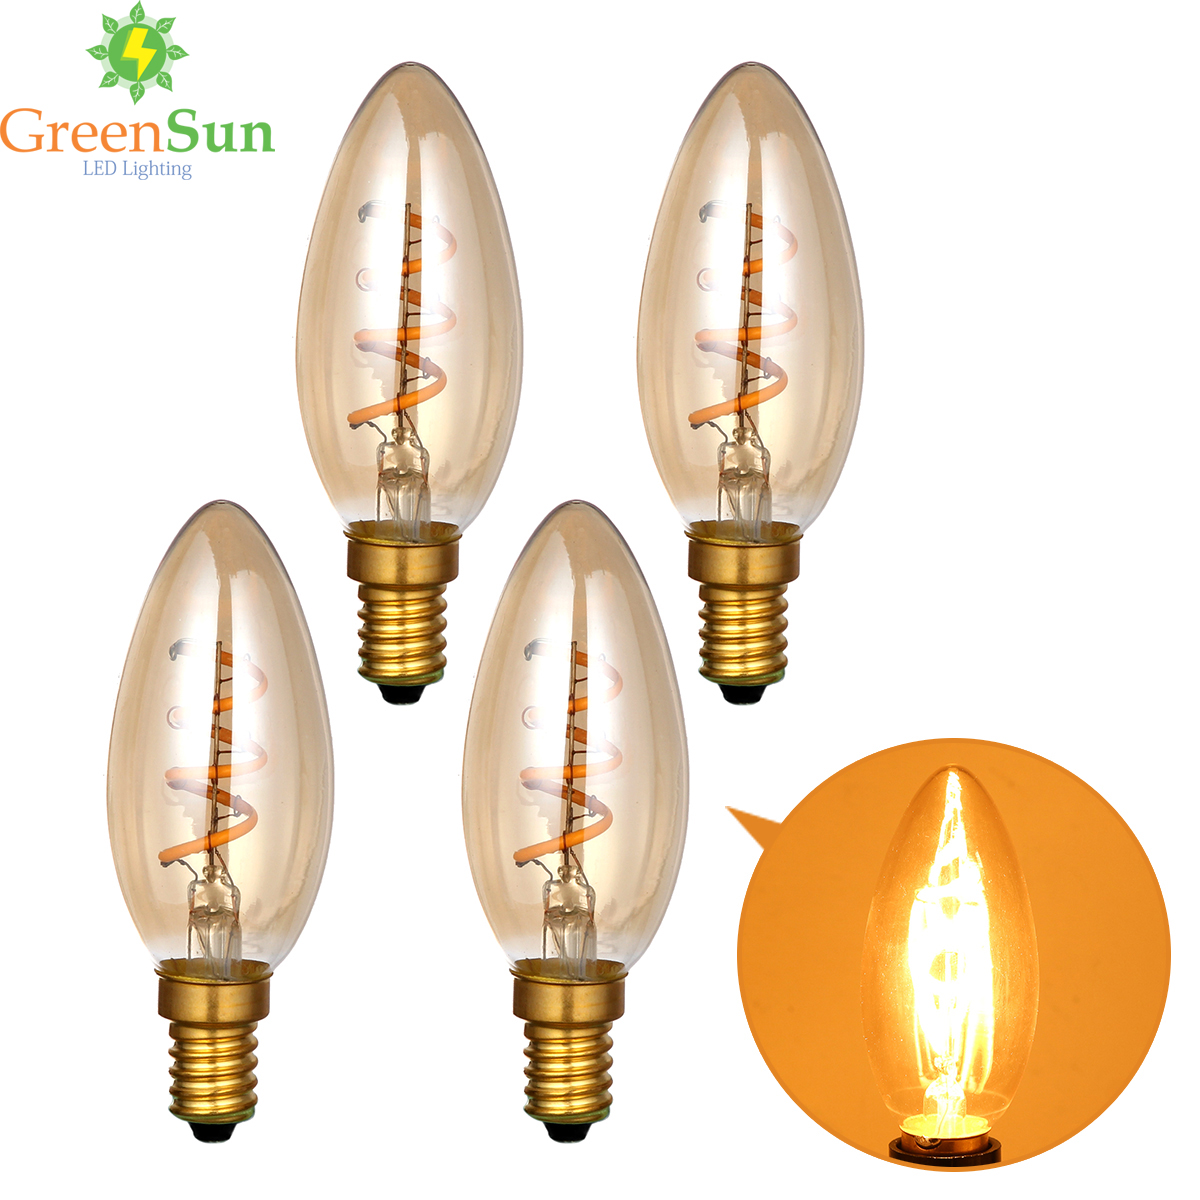 1set gold tint e14 edison led filament bulb c35 vintage spiral lamp warm 2200k soft flexible. Black Bedroom Furniture Sets. Home Design Ideas